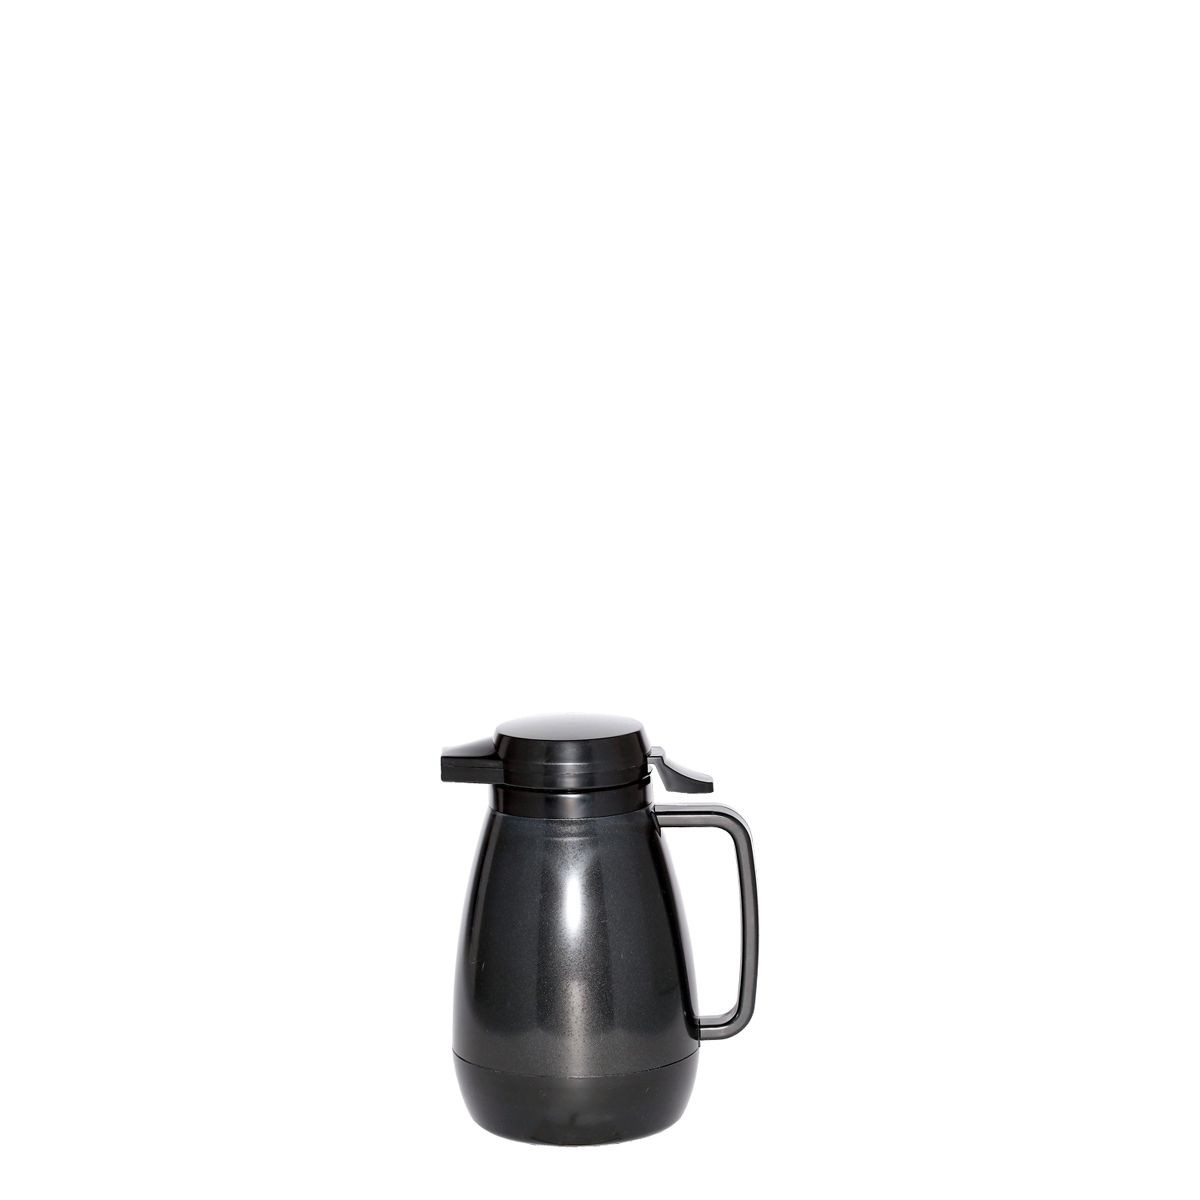 Service Ideas PB501BL Thermo-Serv Black Push Button Coffee Server, .6 Liter (20 oz.)